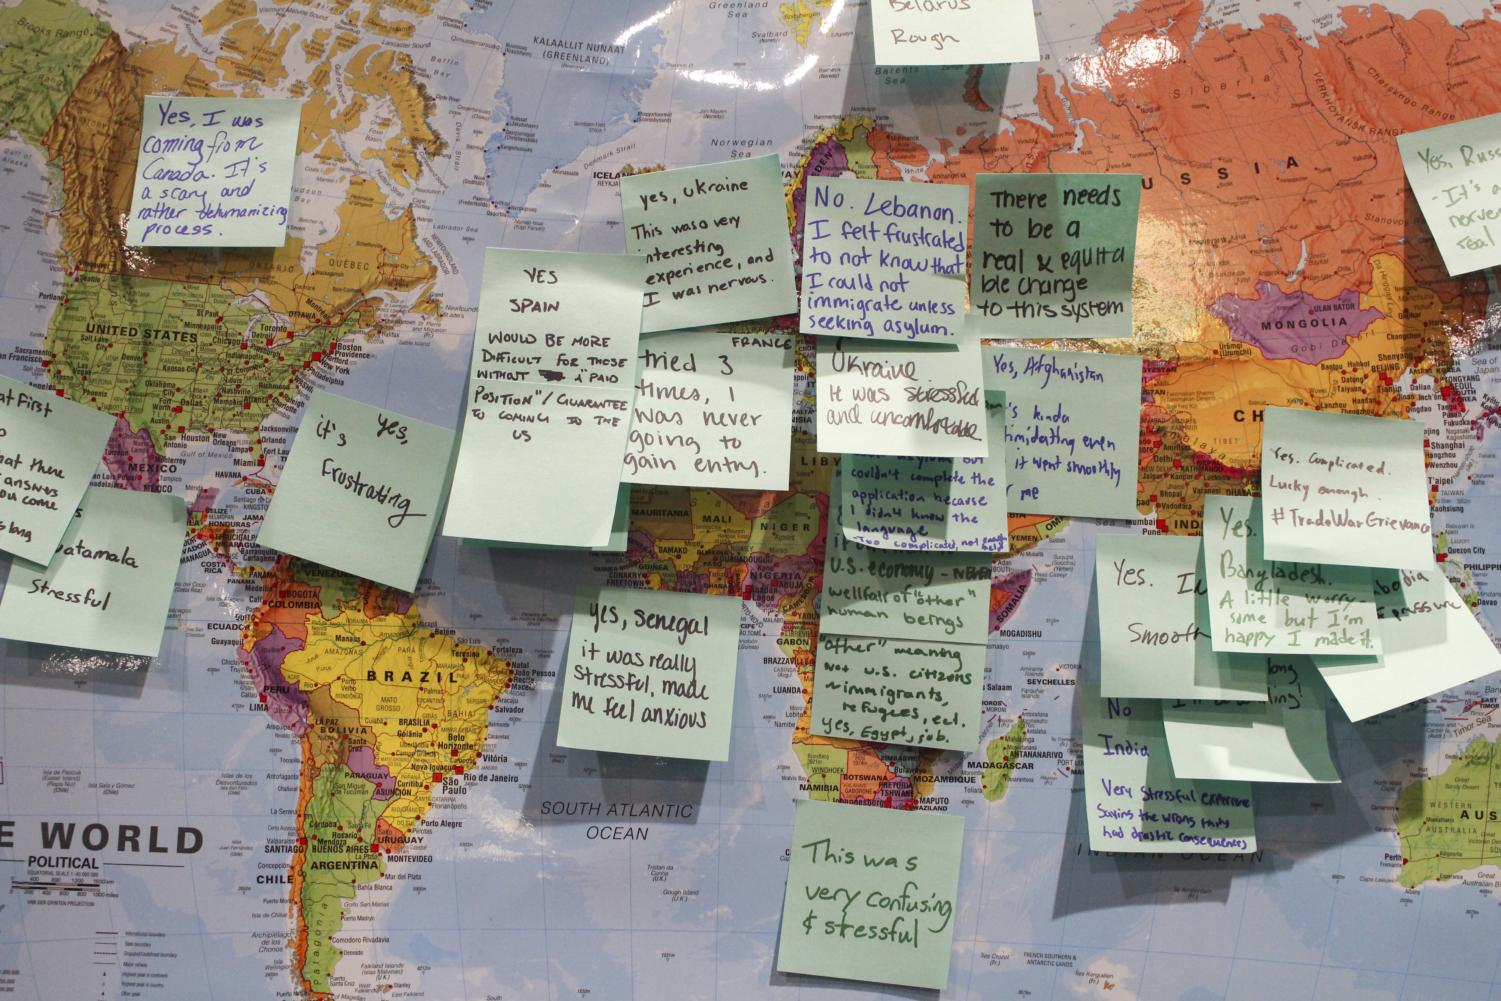 Students described their experiences on sticky notes with a mock immigration process based on which country they were assigned in the activity.